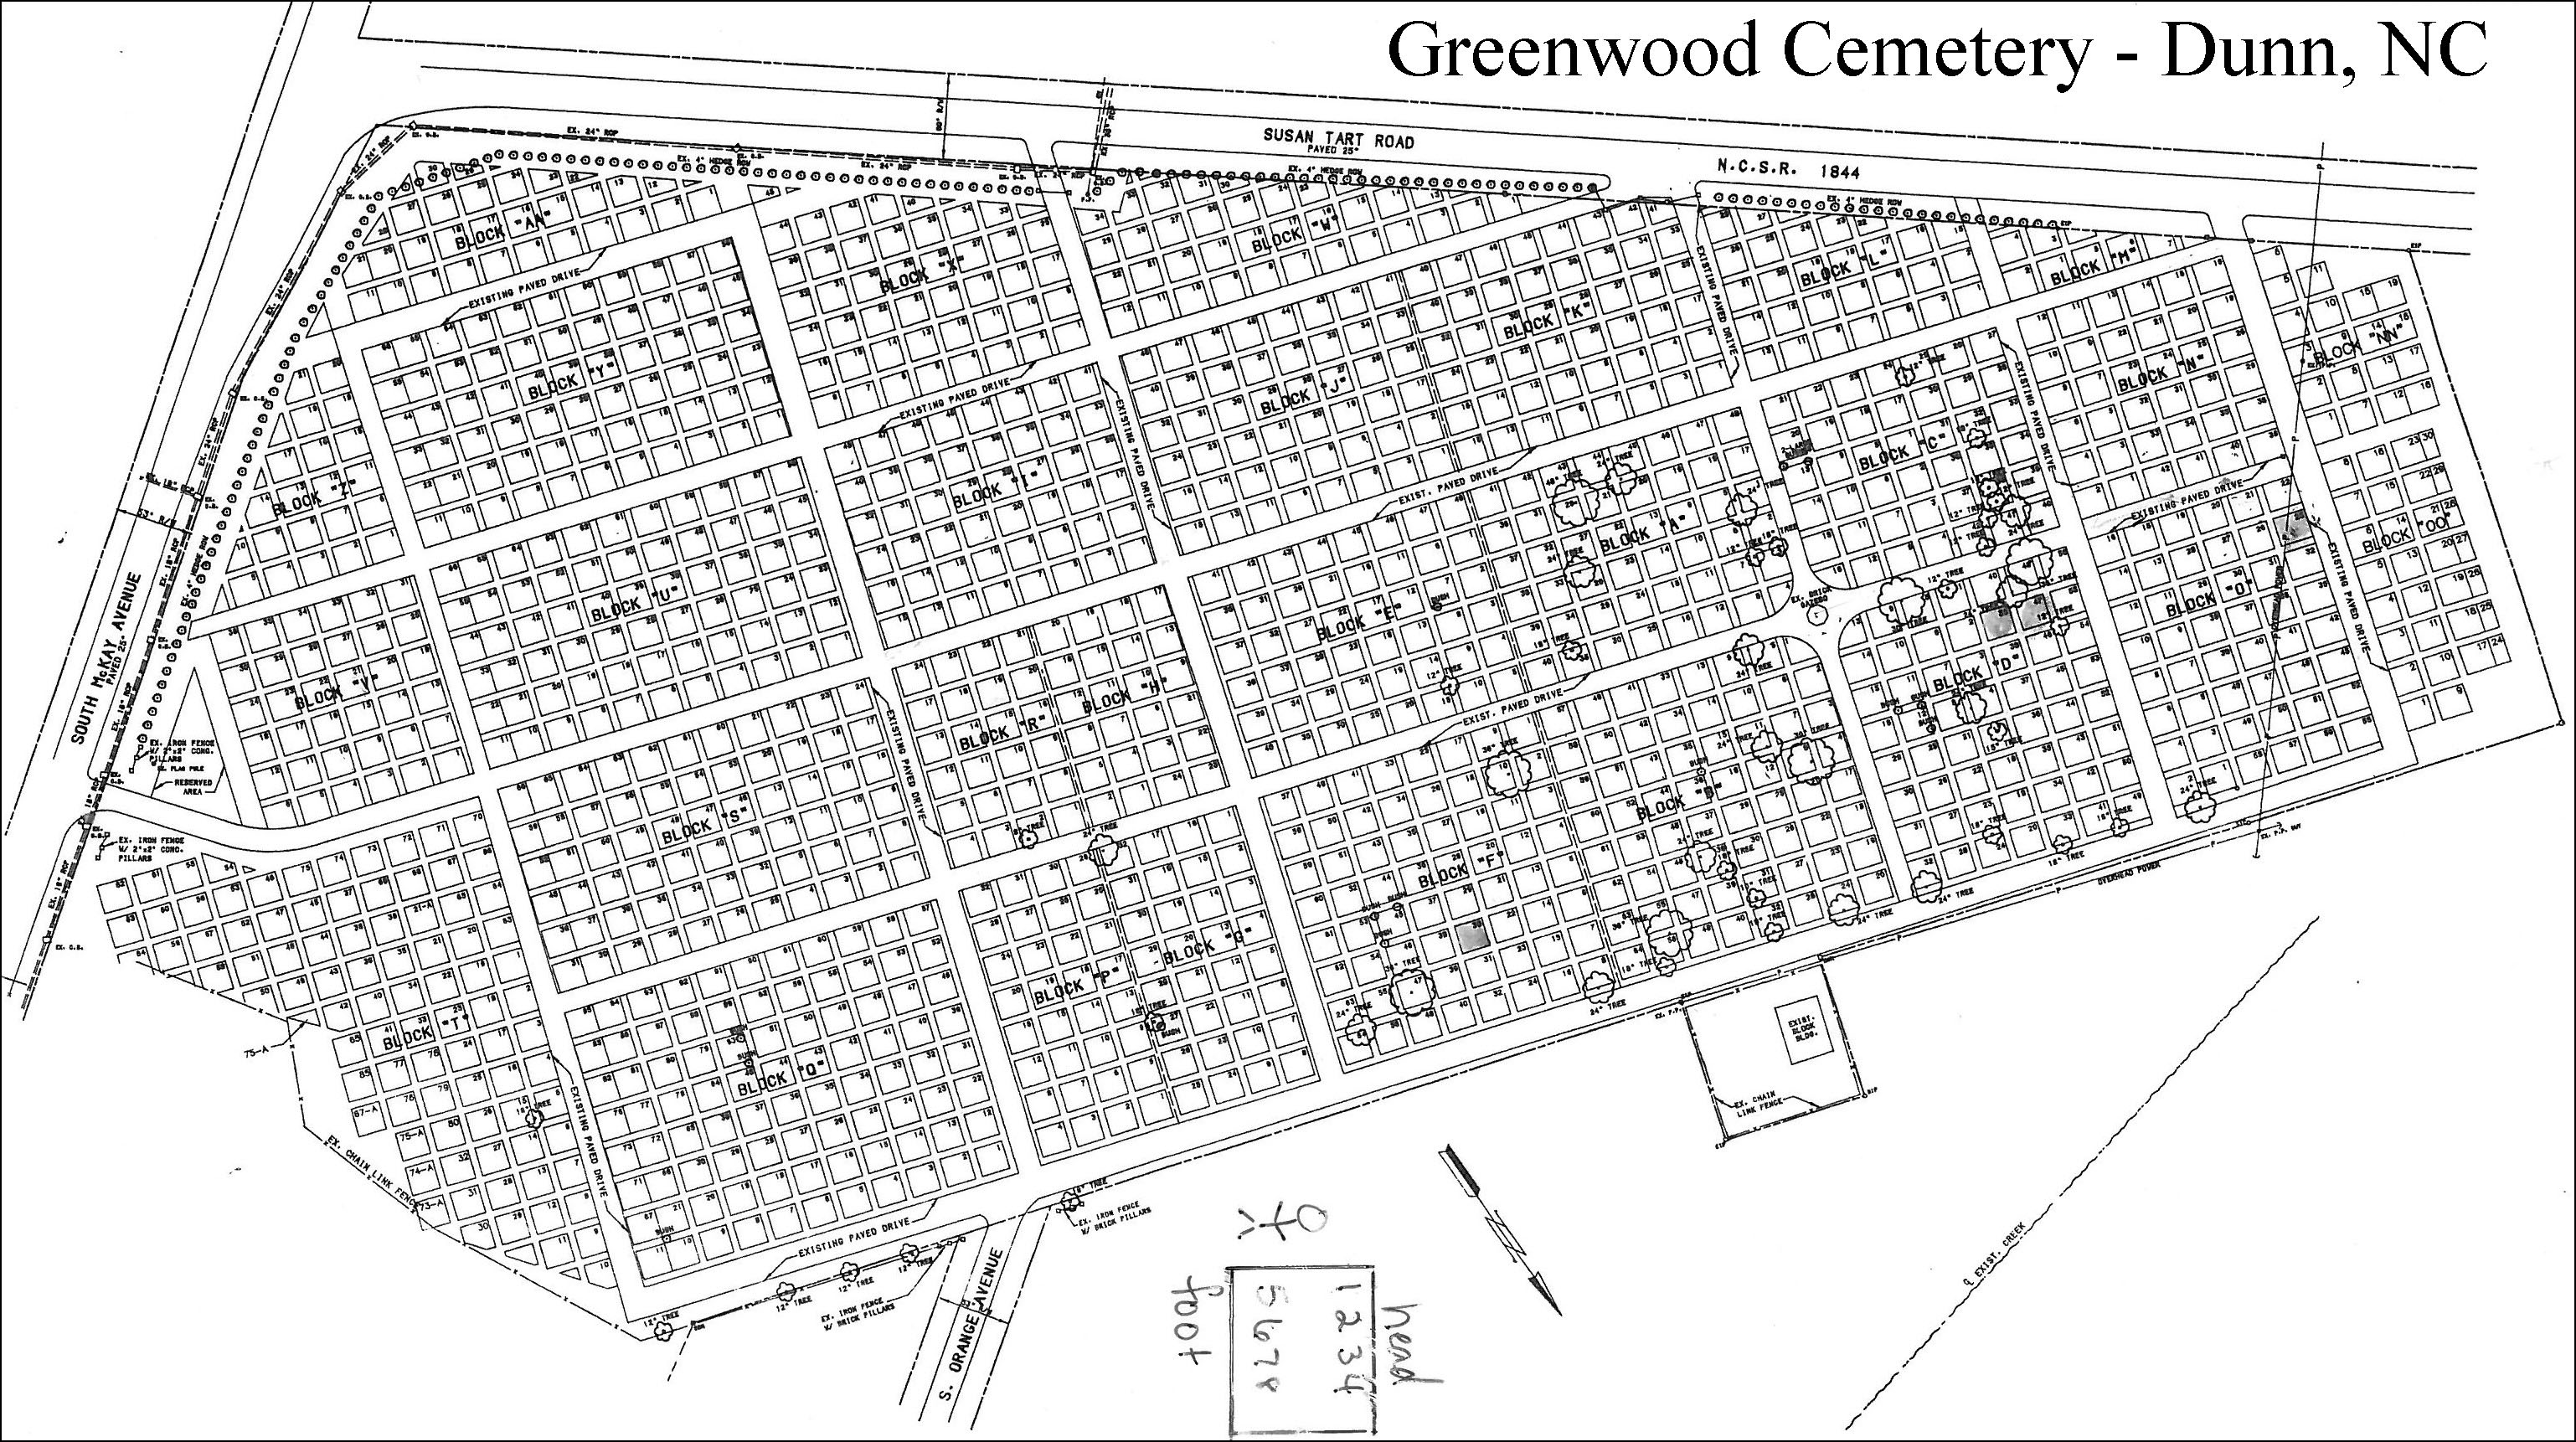 Greenwood Cemetery Dunn North Carolina Burial Records